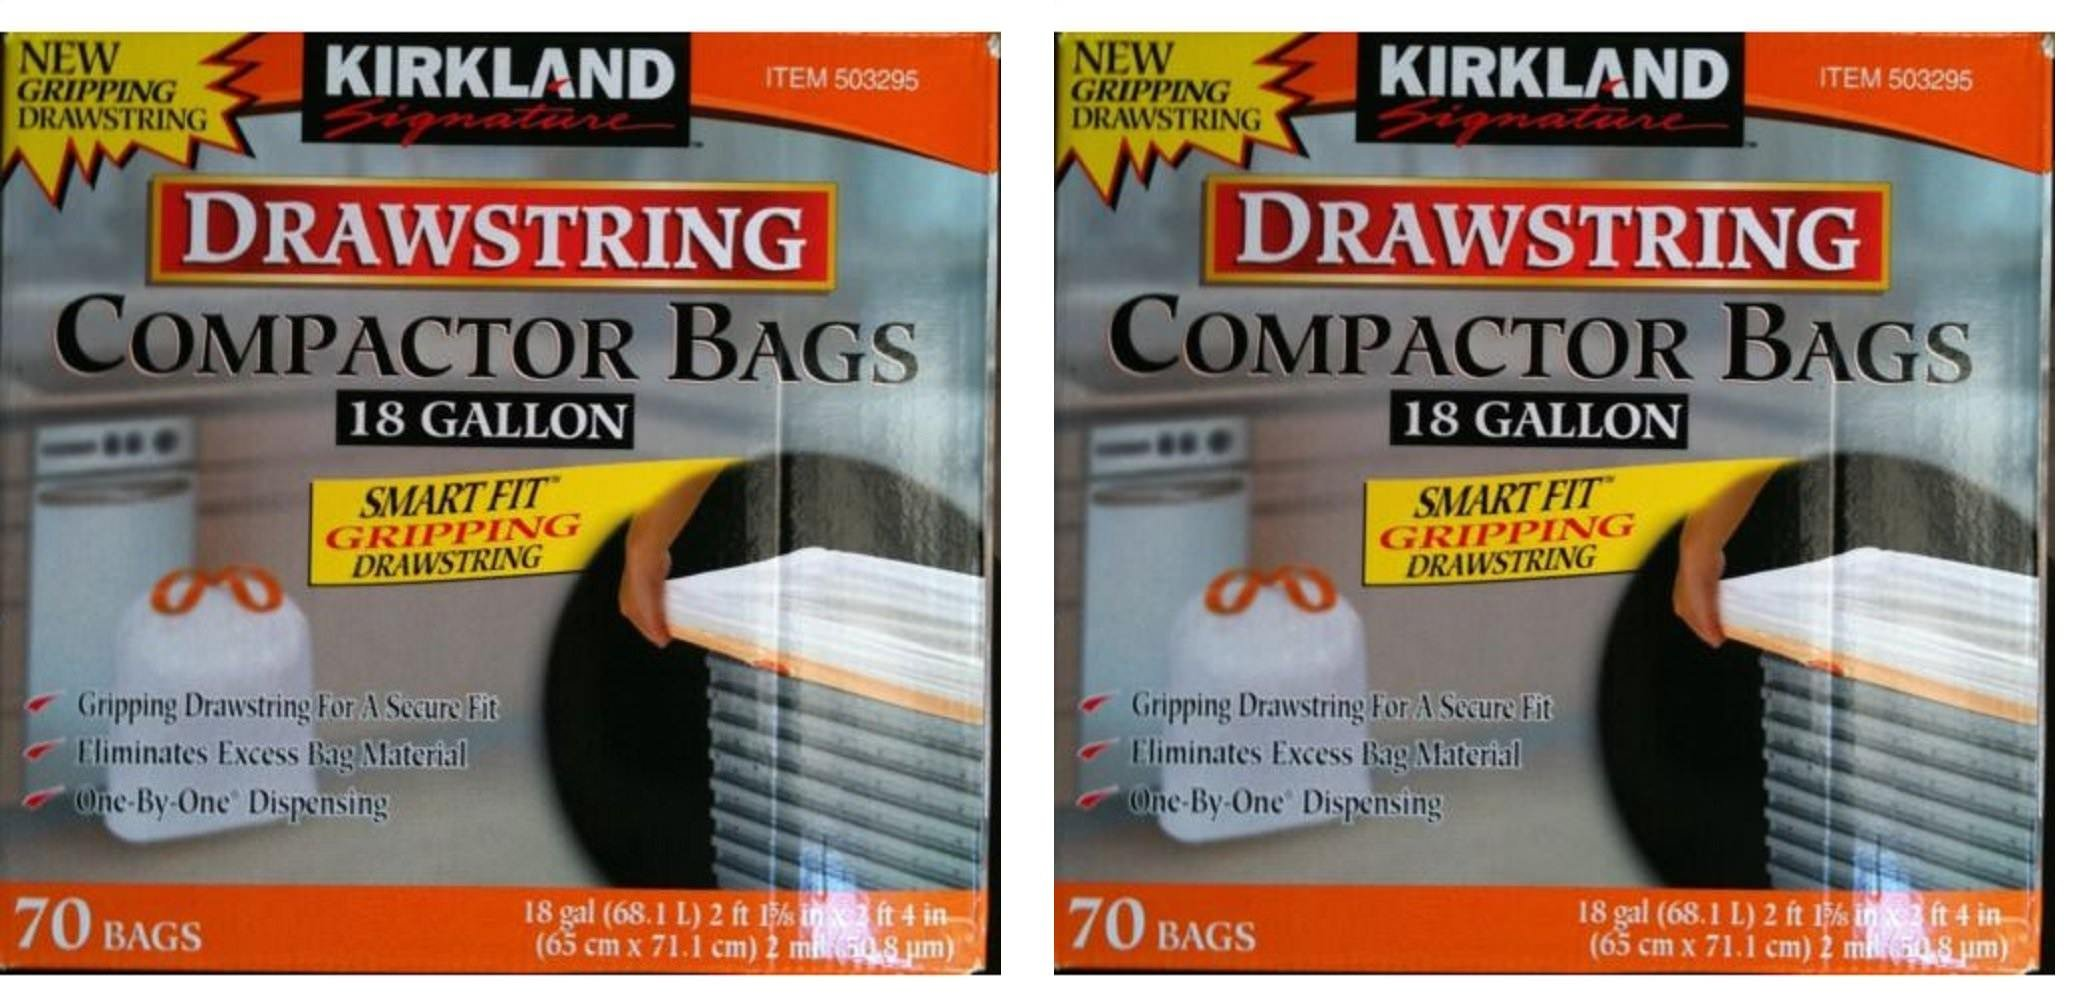 Kirkland Compactor Bags Smart Fit Gripping Drawstring Trash Bags 18 Gallon, 2 Pack (70 ct Box) by Kirkland Signature (Image #1)